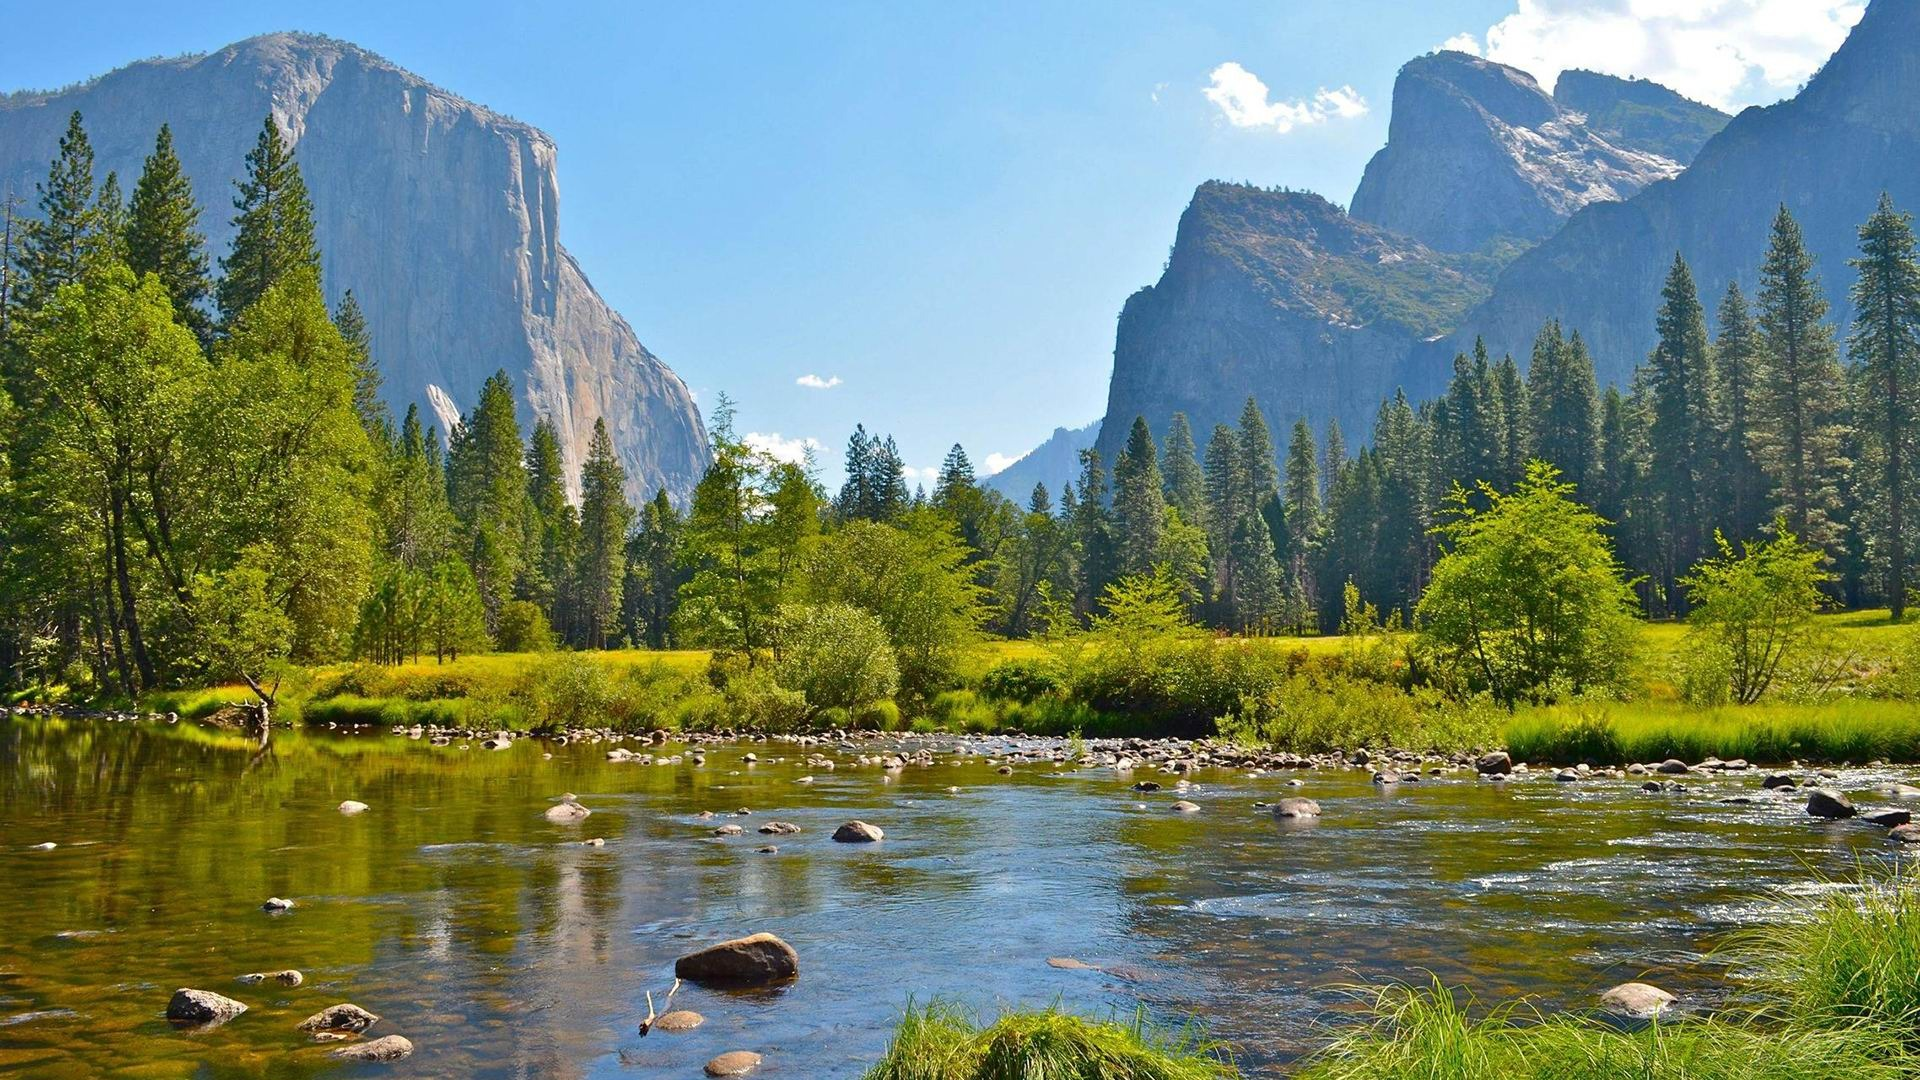 Yosemite National Park Microsoft Theme Wallpaper 01 Preview 10wallpaper Com